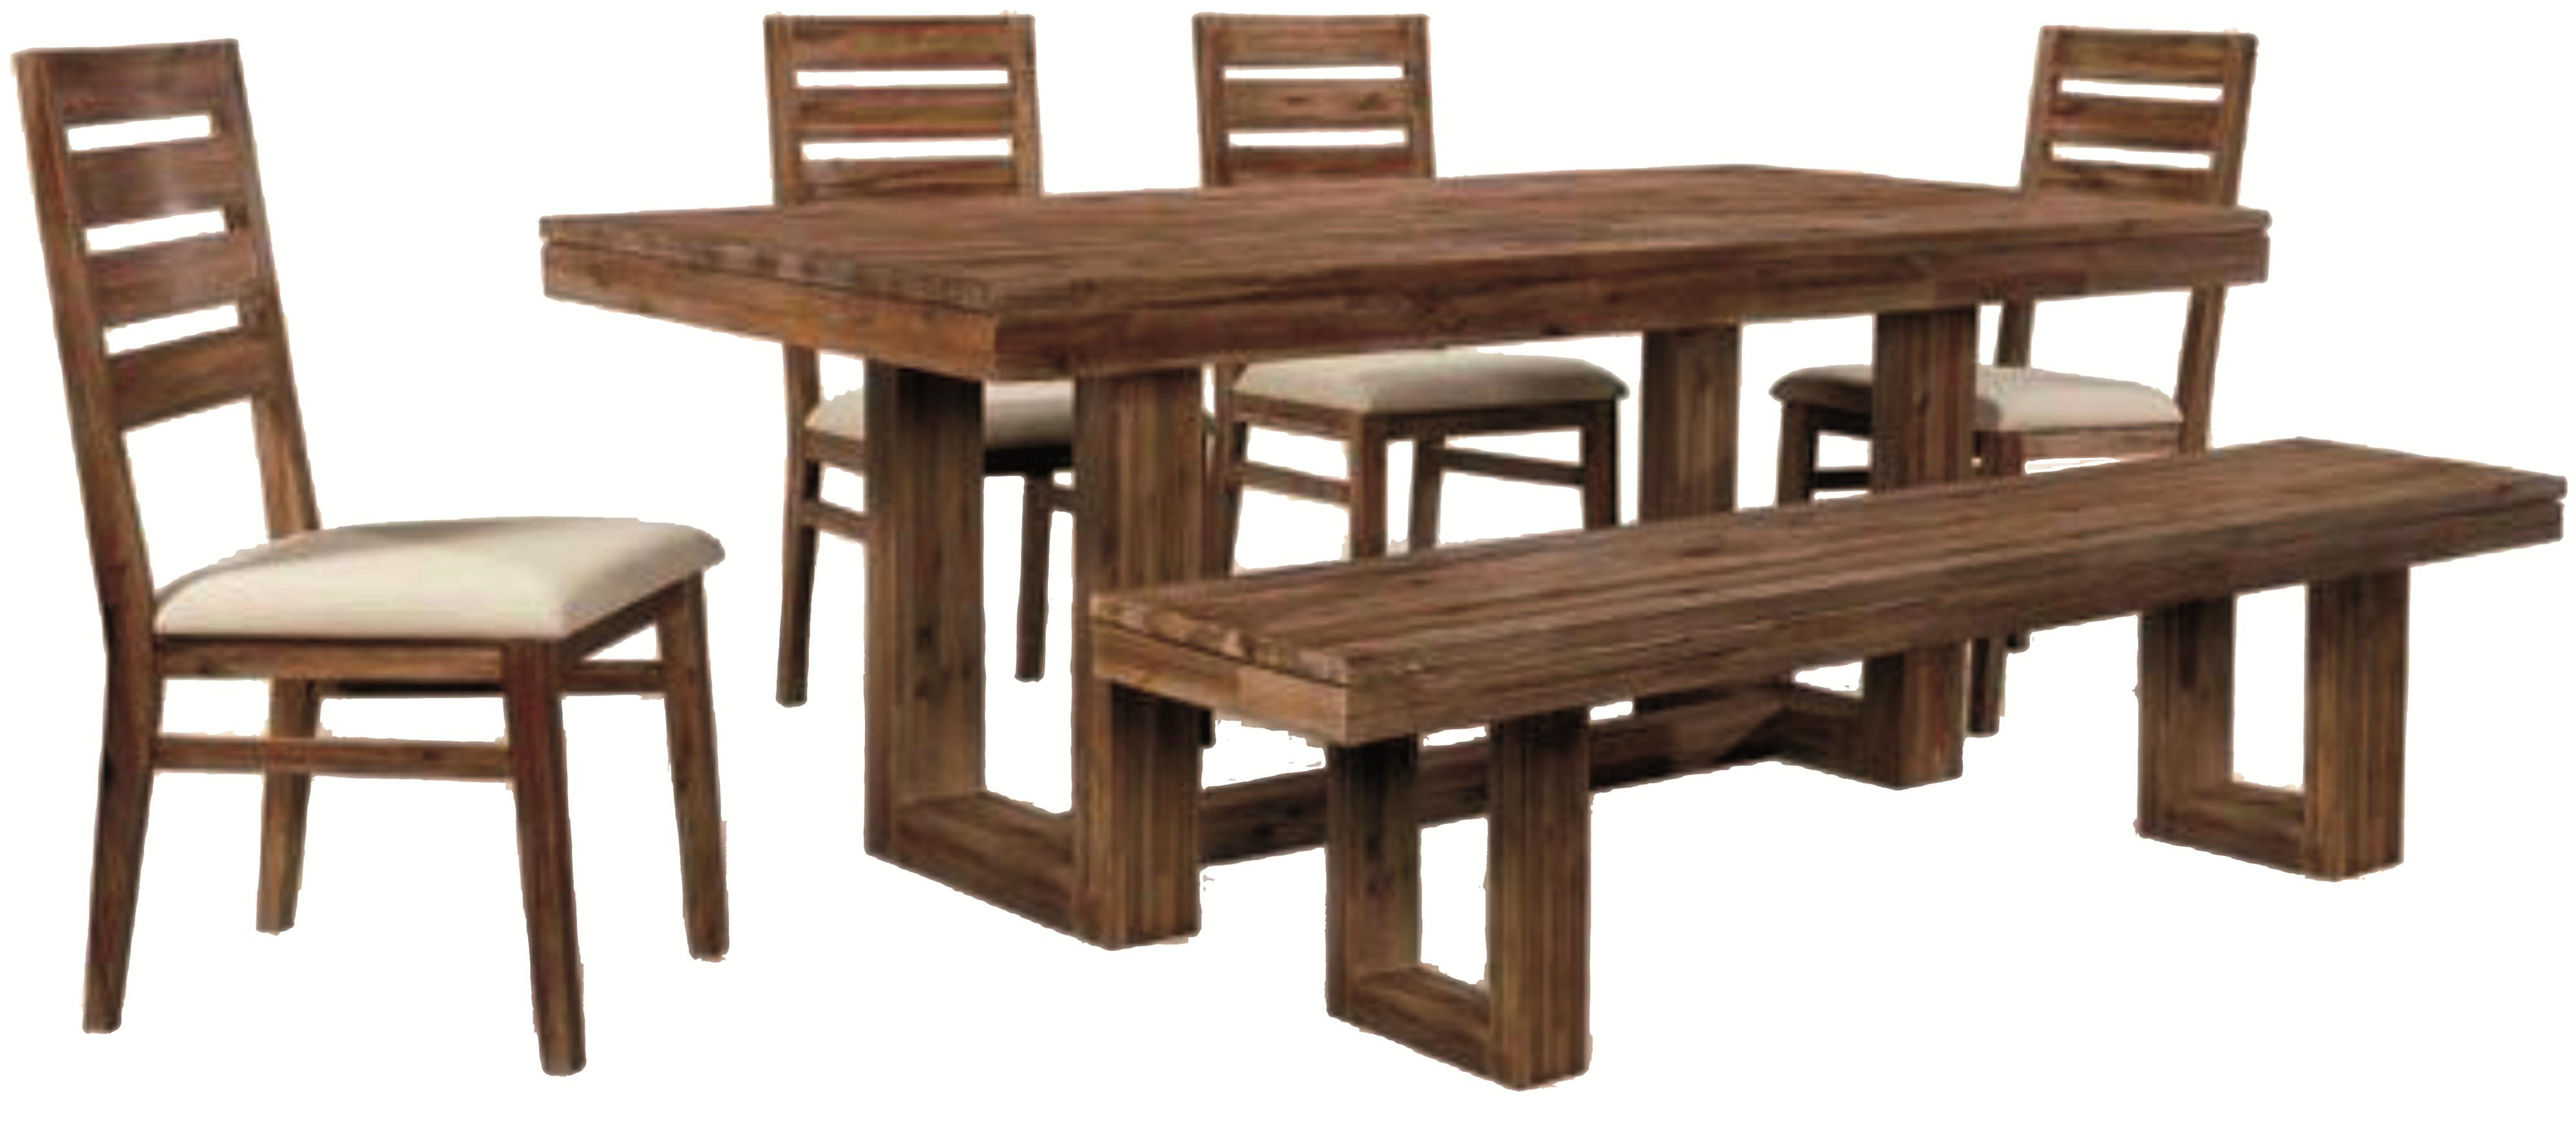 Six piece modern rustic rectangular trestle table with ladderback side chairs dining bench set Dining table and bench set